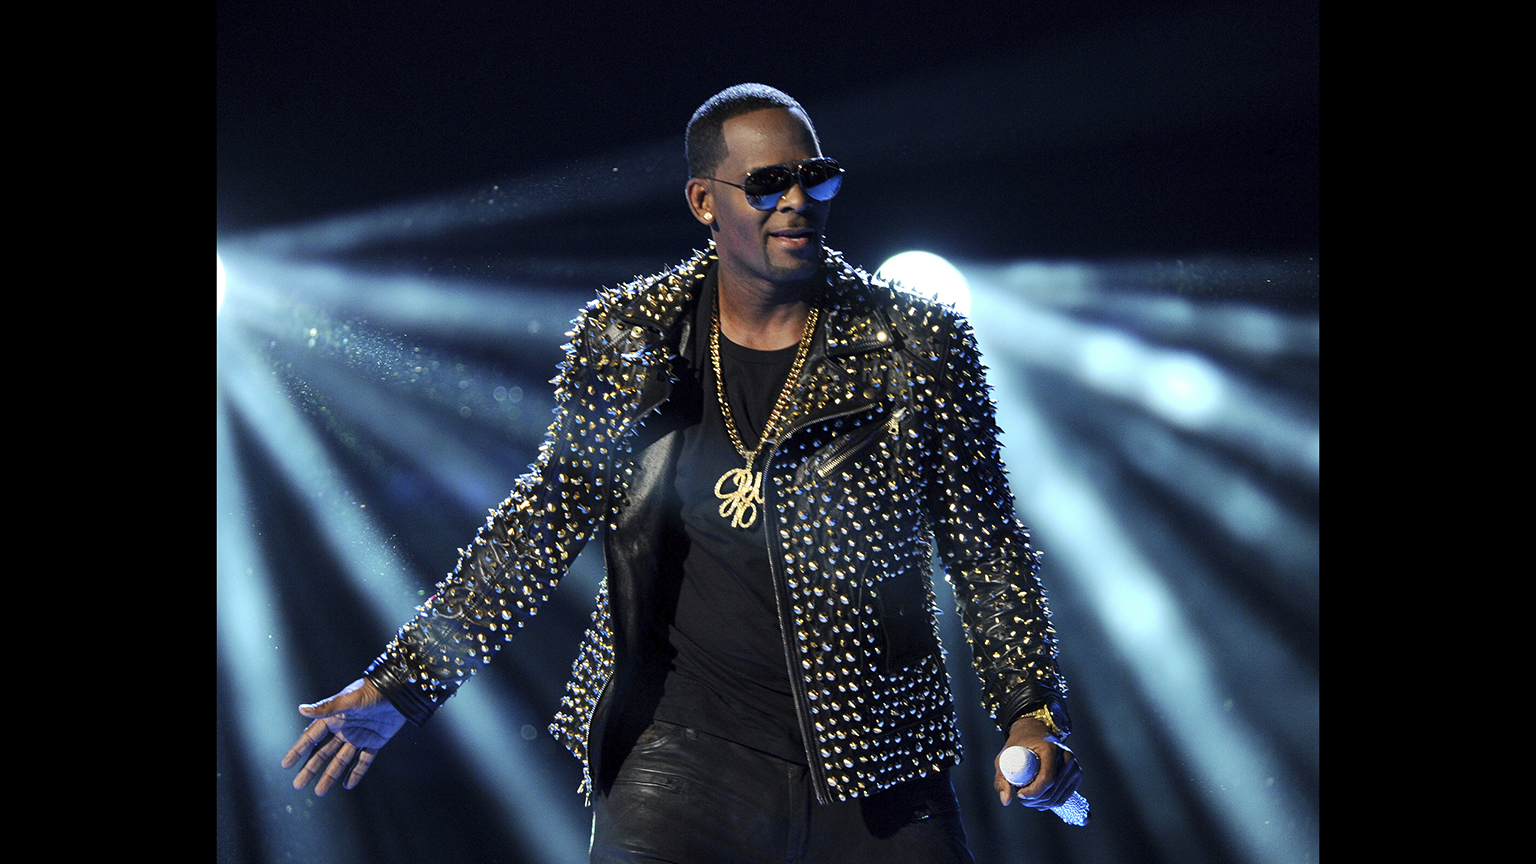 In this June 30, 2013 file photo, R. Kelly performs at the BET Awards in Los Angeles. (Photo by Frank Micelotta / Invision / AP, File)